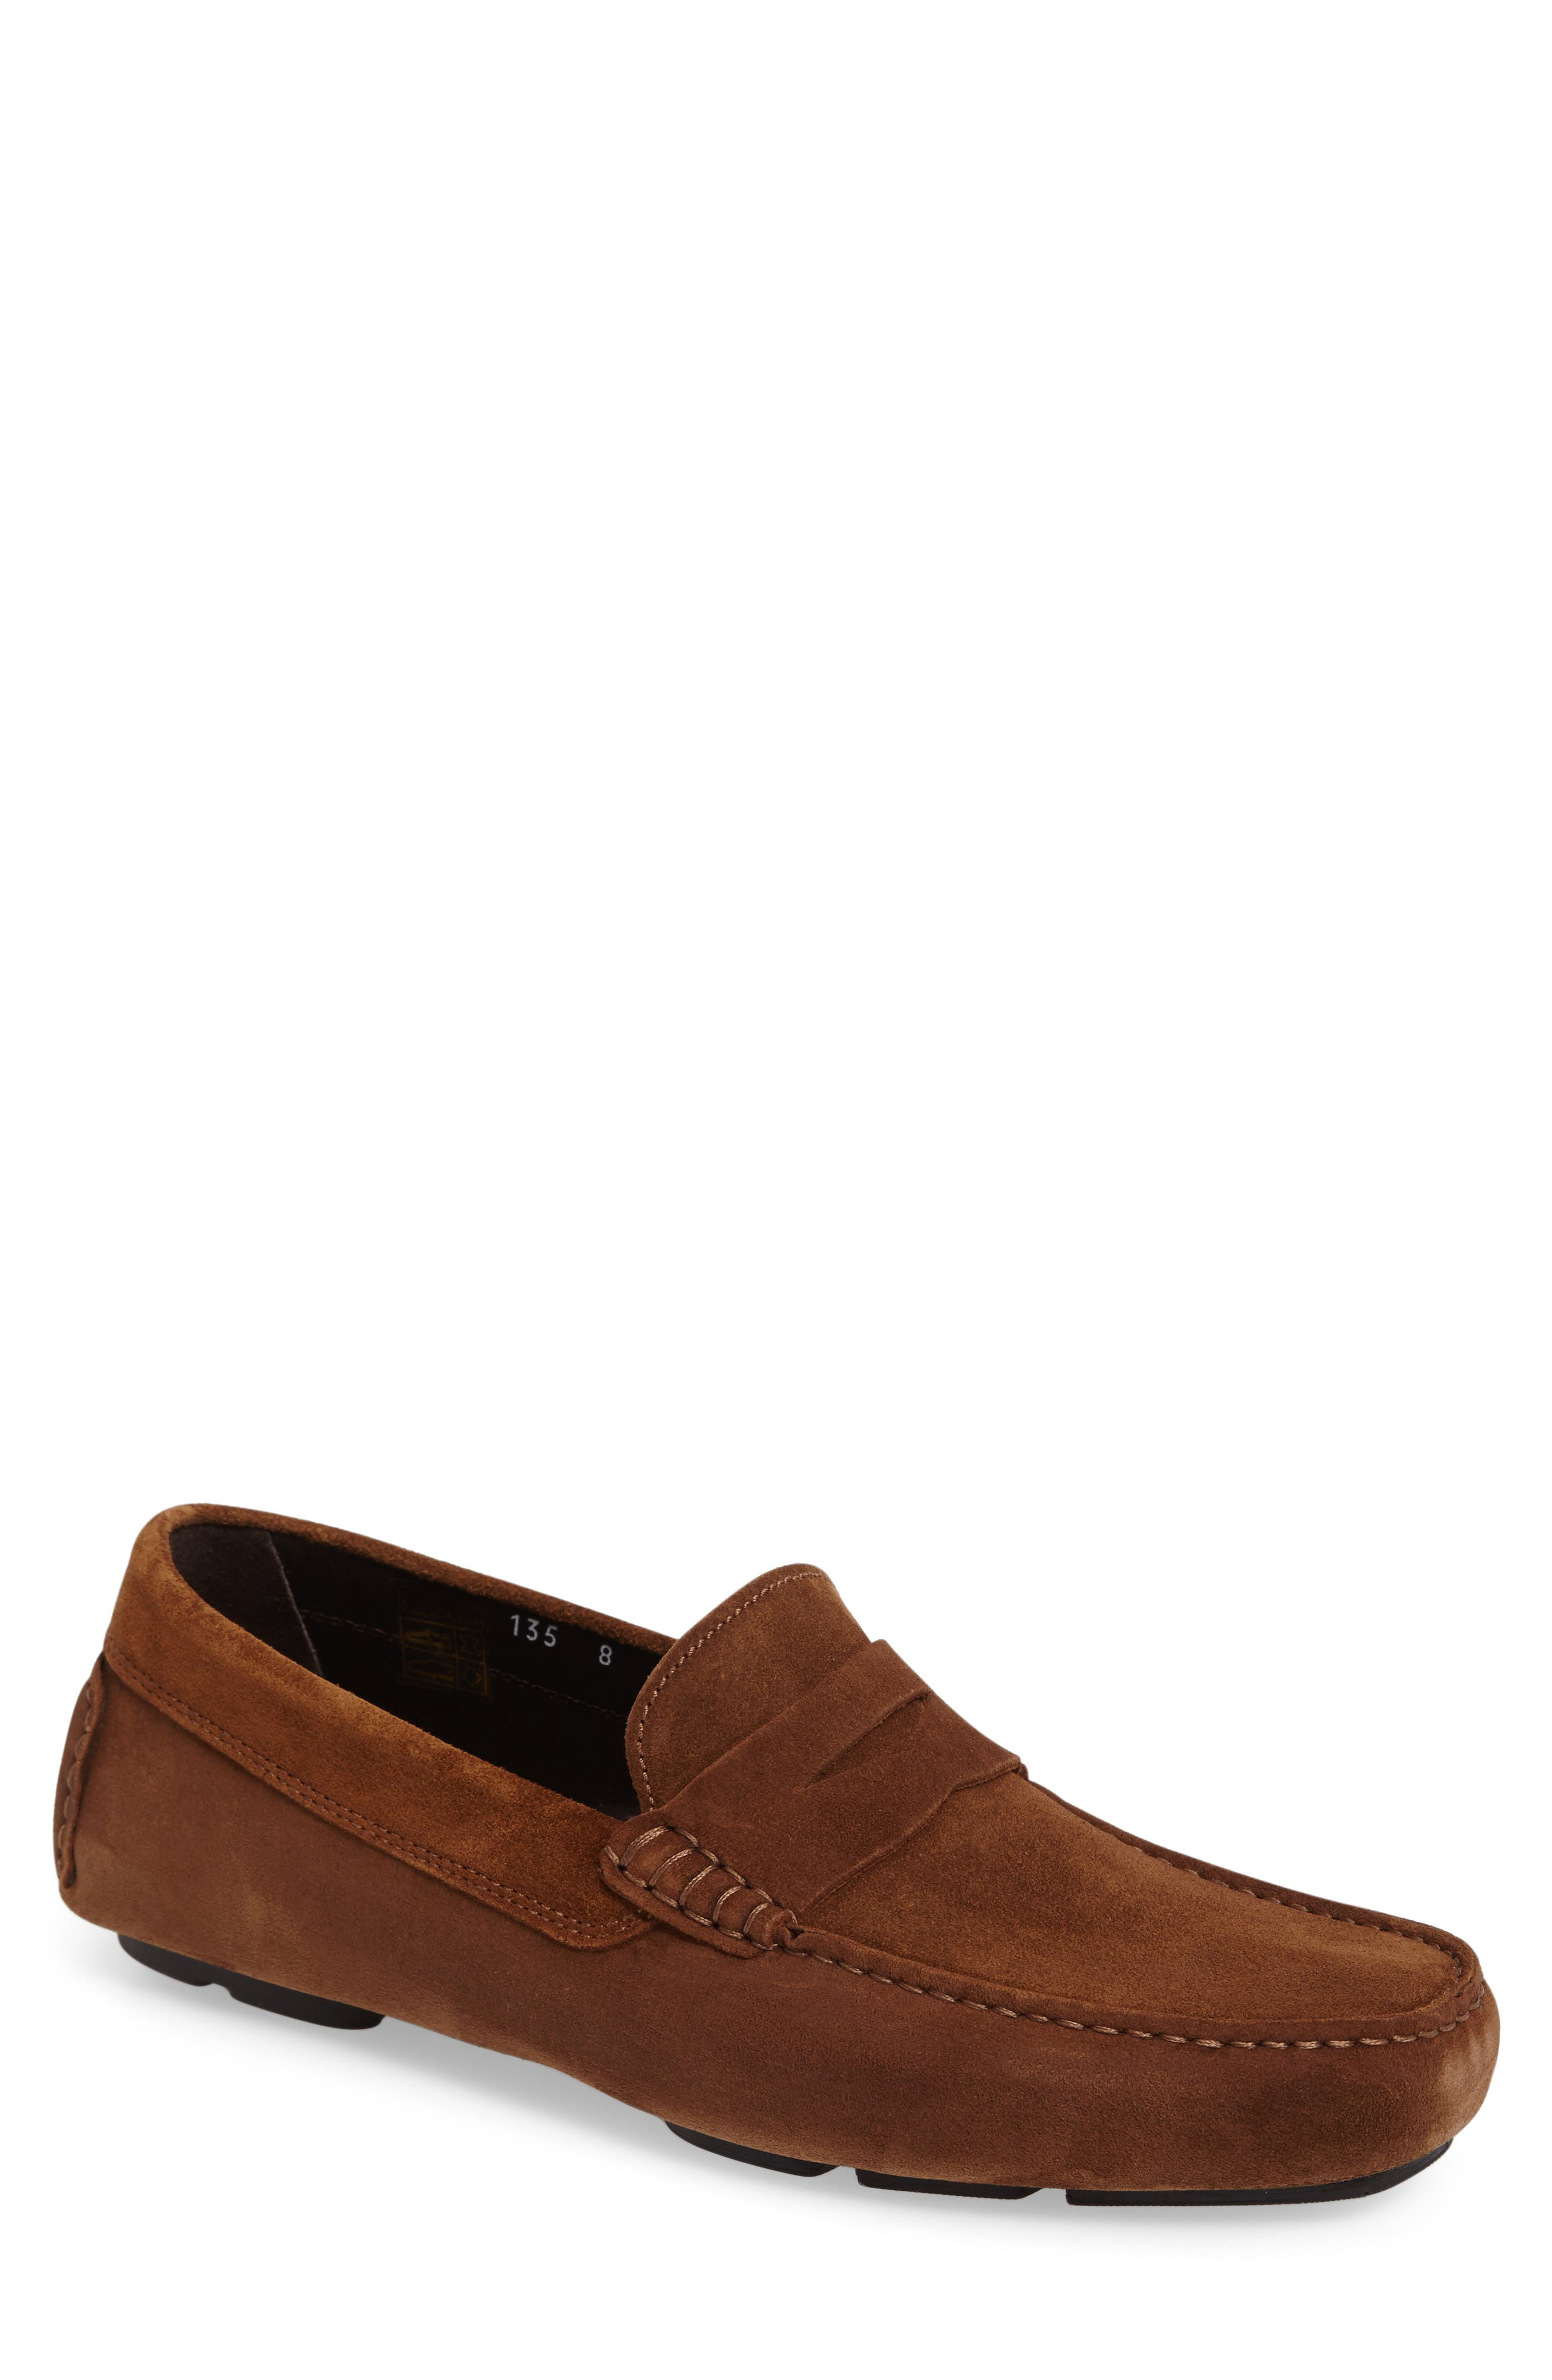 Mitchum Driving Shoe,                             Main thumbnail 1, color,                             BROWN/ BROWN SUEDE